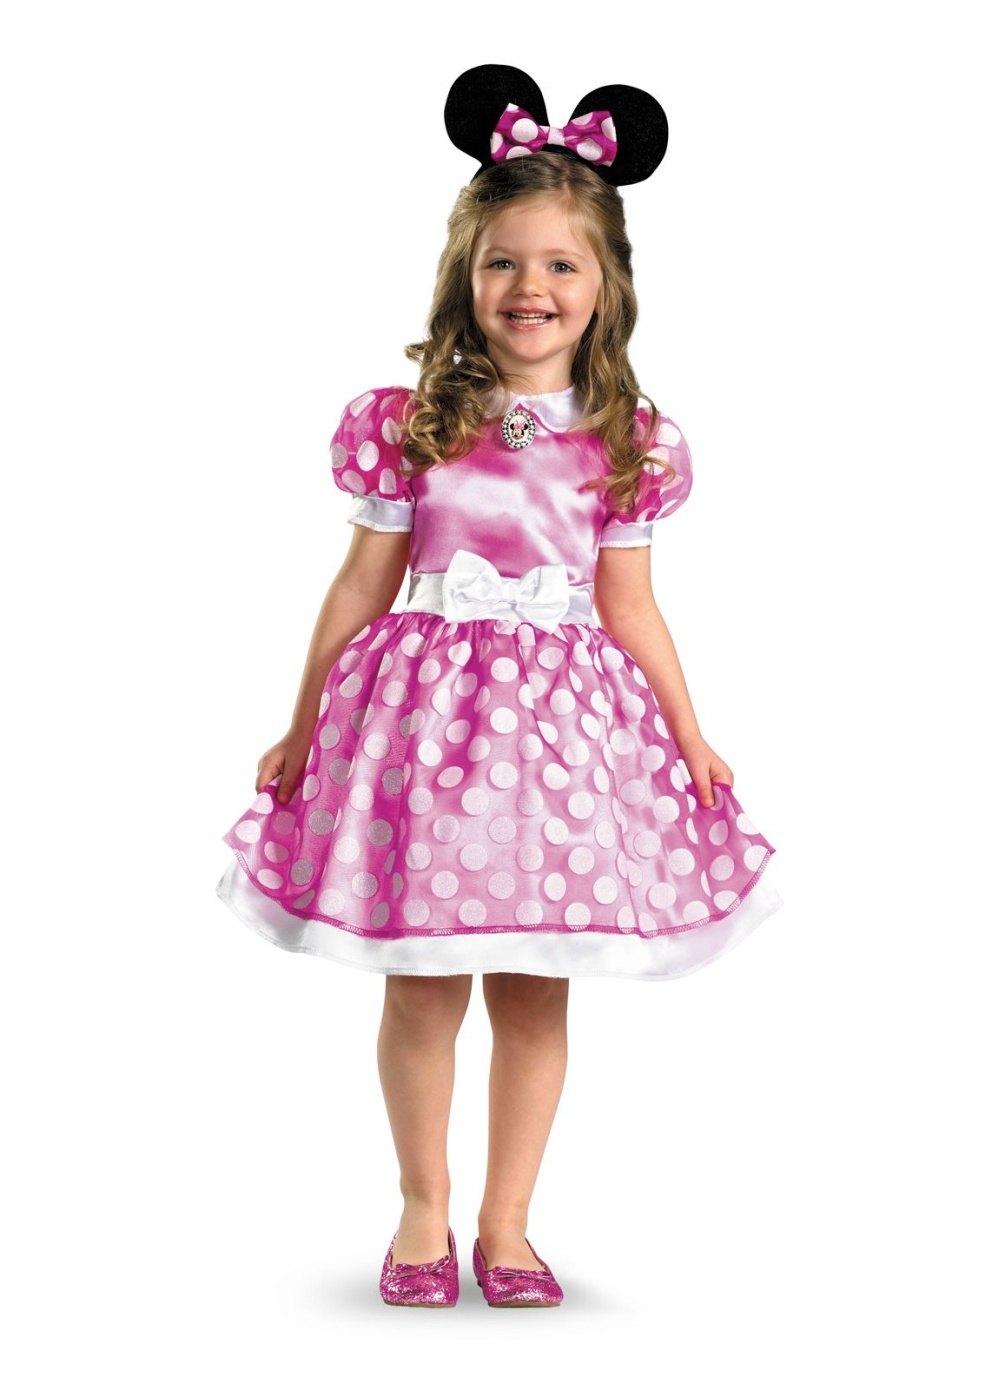 Shop for minnie mouse clothes online at Target. Free shipping on purchases over $35 and save 5% every day with your Target REDcard. Little Girls' Minnie Mouse by Handcraft. Minnie Mouse. out of 5 stars with 72 reviews. $ - $ Choose options. of 4. related searches. mickey mouse clothes;.